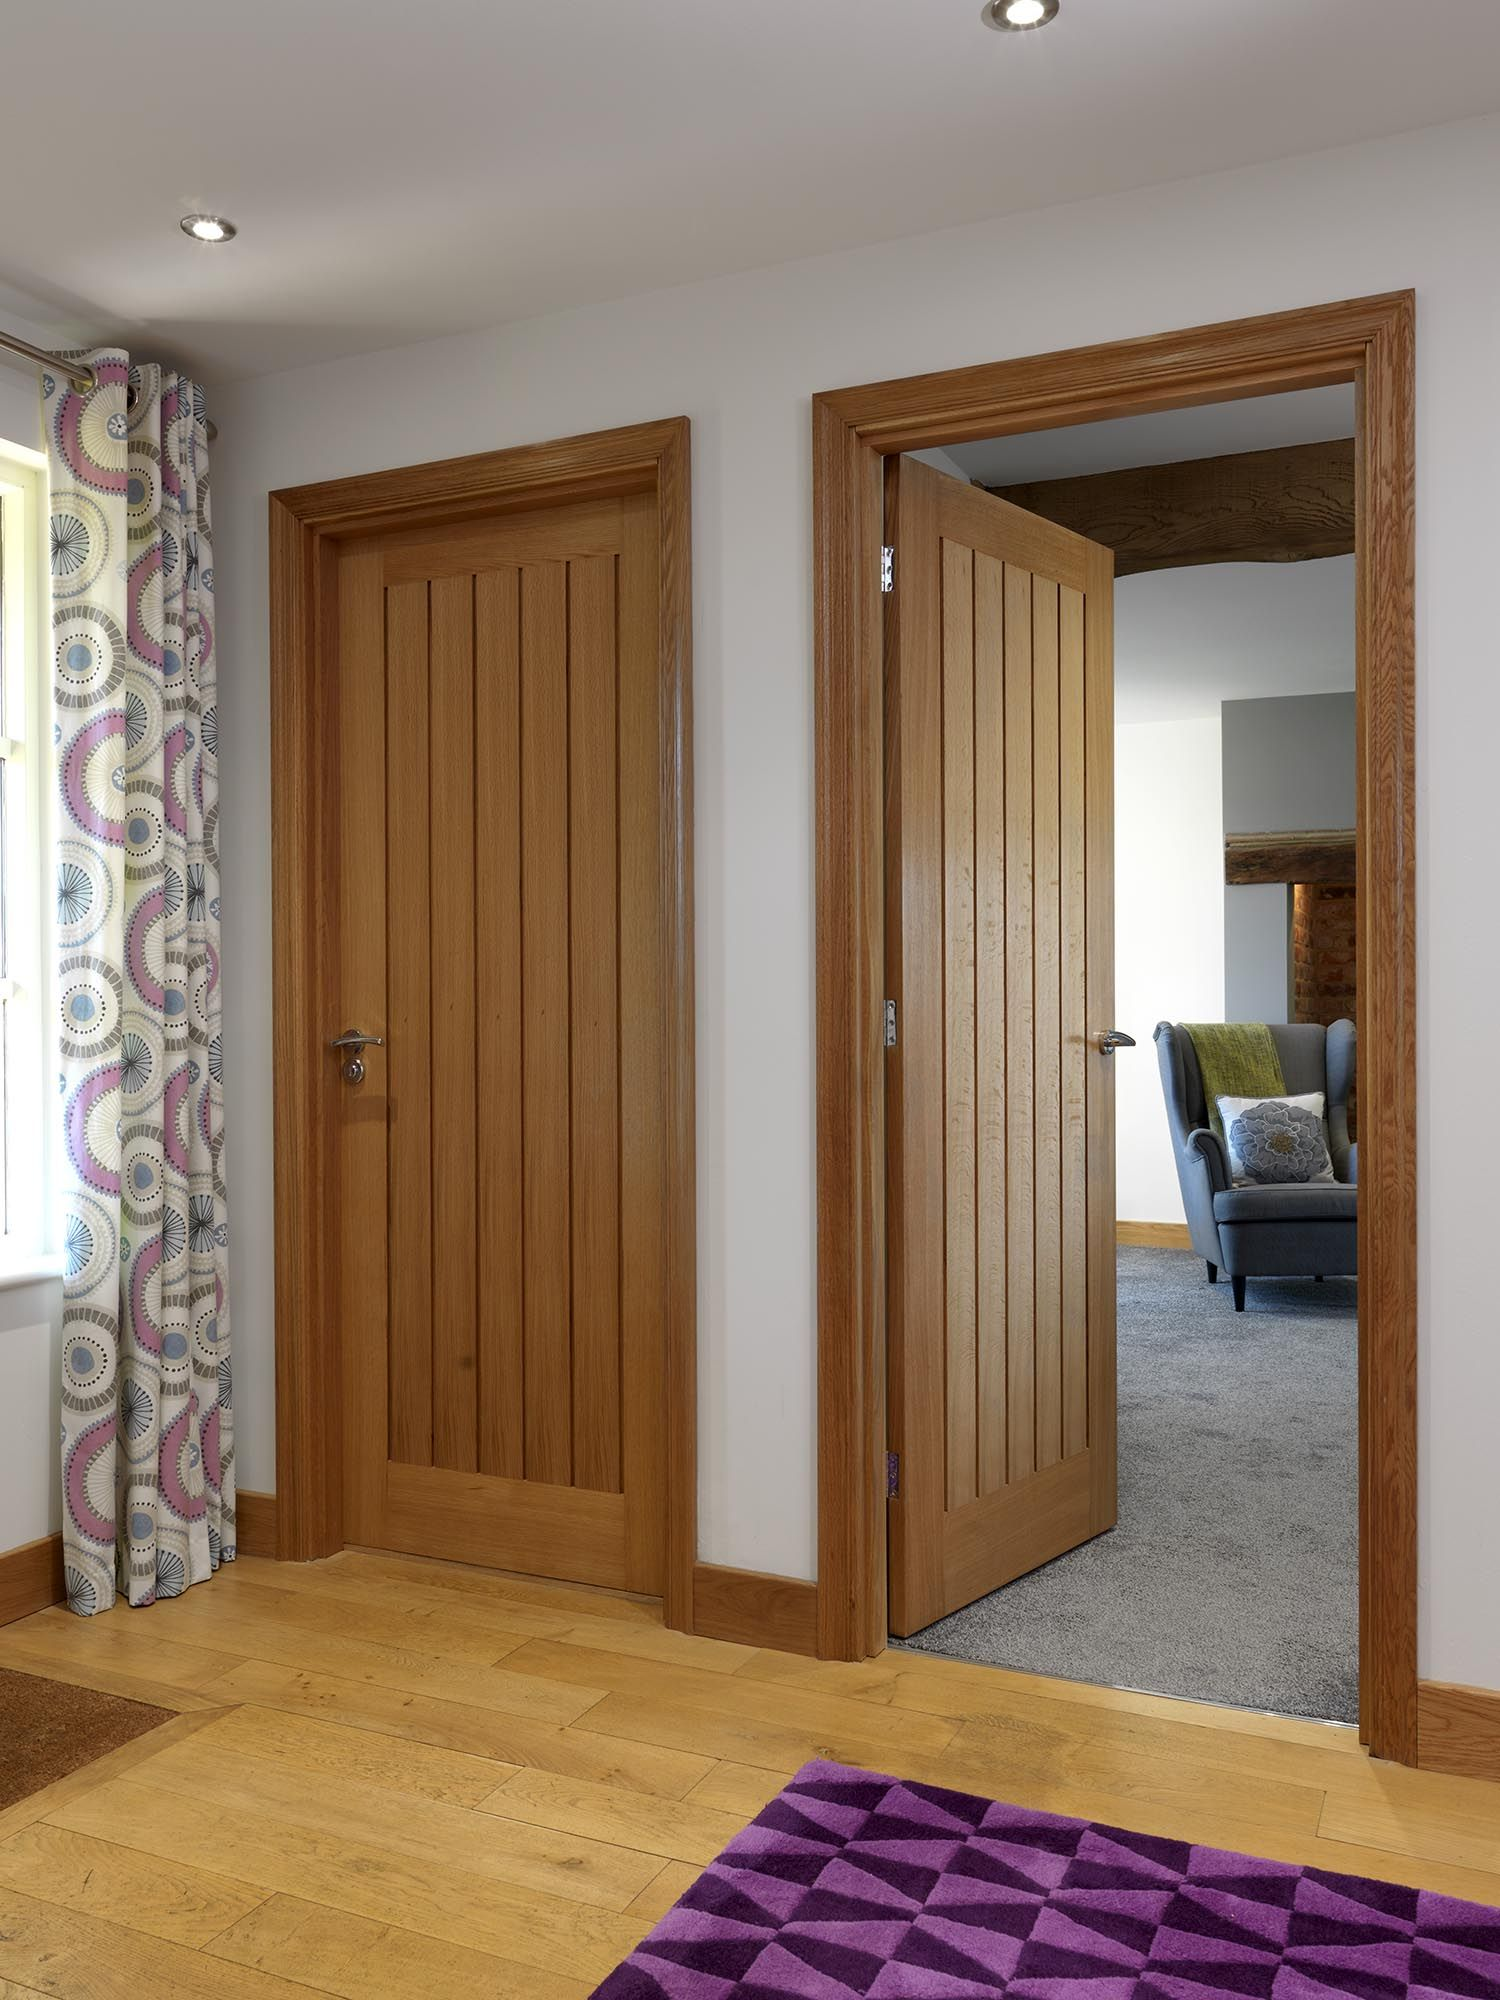 Classic cottage style oak veneered interior doors. JB Kind's River Oak Cottage - Yoxall #oakdoors